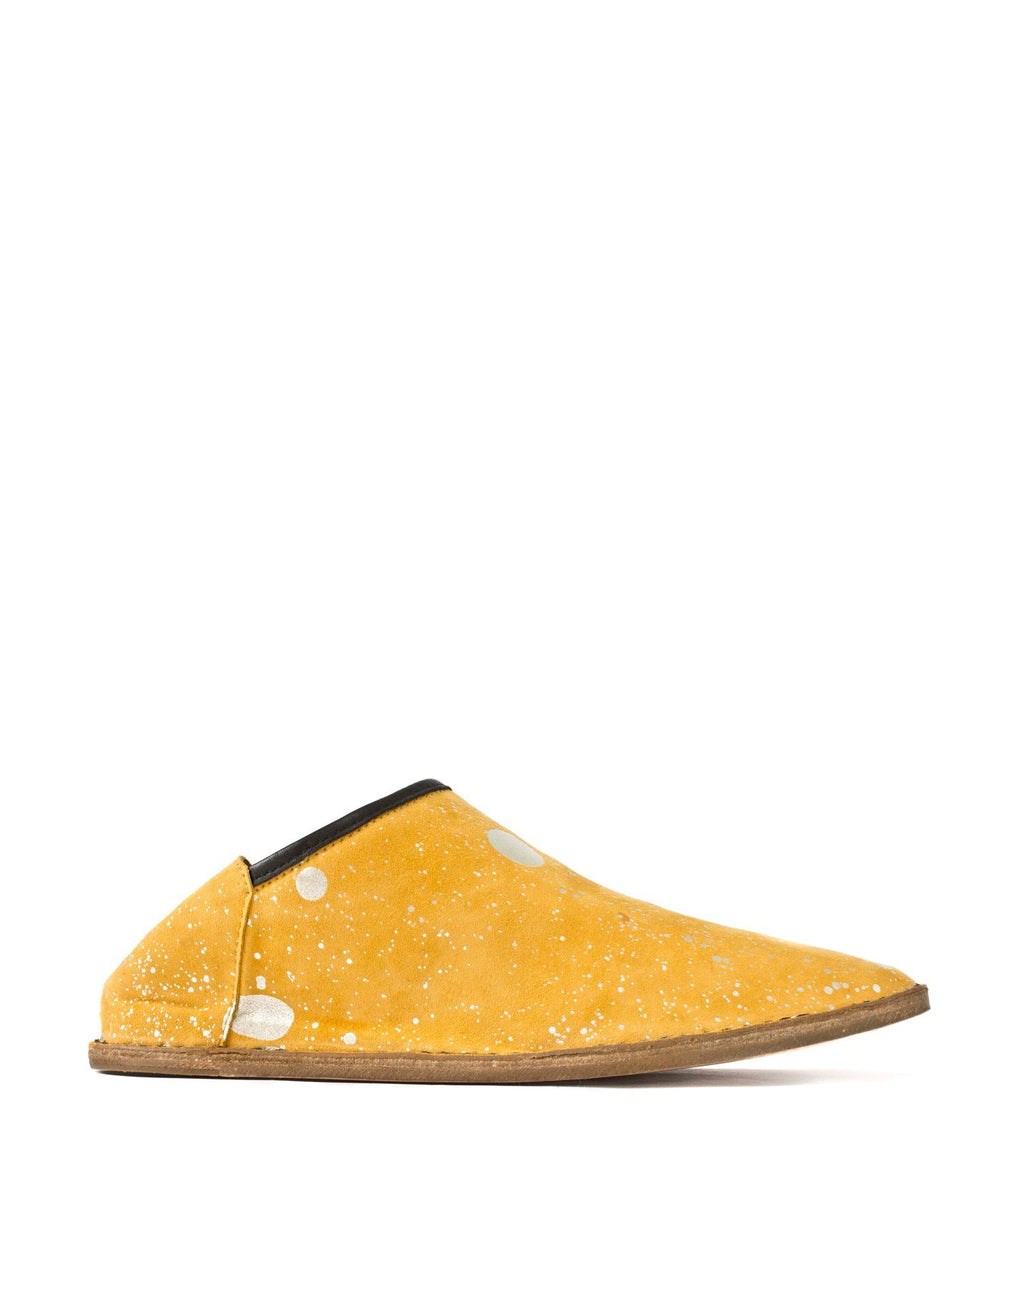 Yellow suede slip on slipper by designer Georgina Goodman. These outdoor shoes with an indoor attitude have a hidden wedge and padded insole for all day comfort in style.